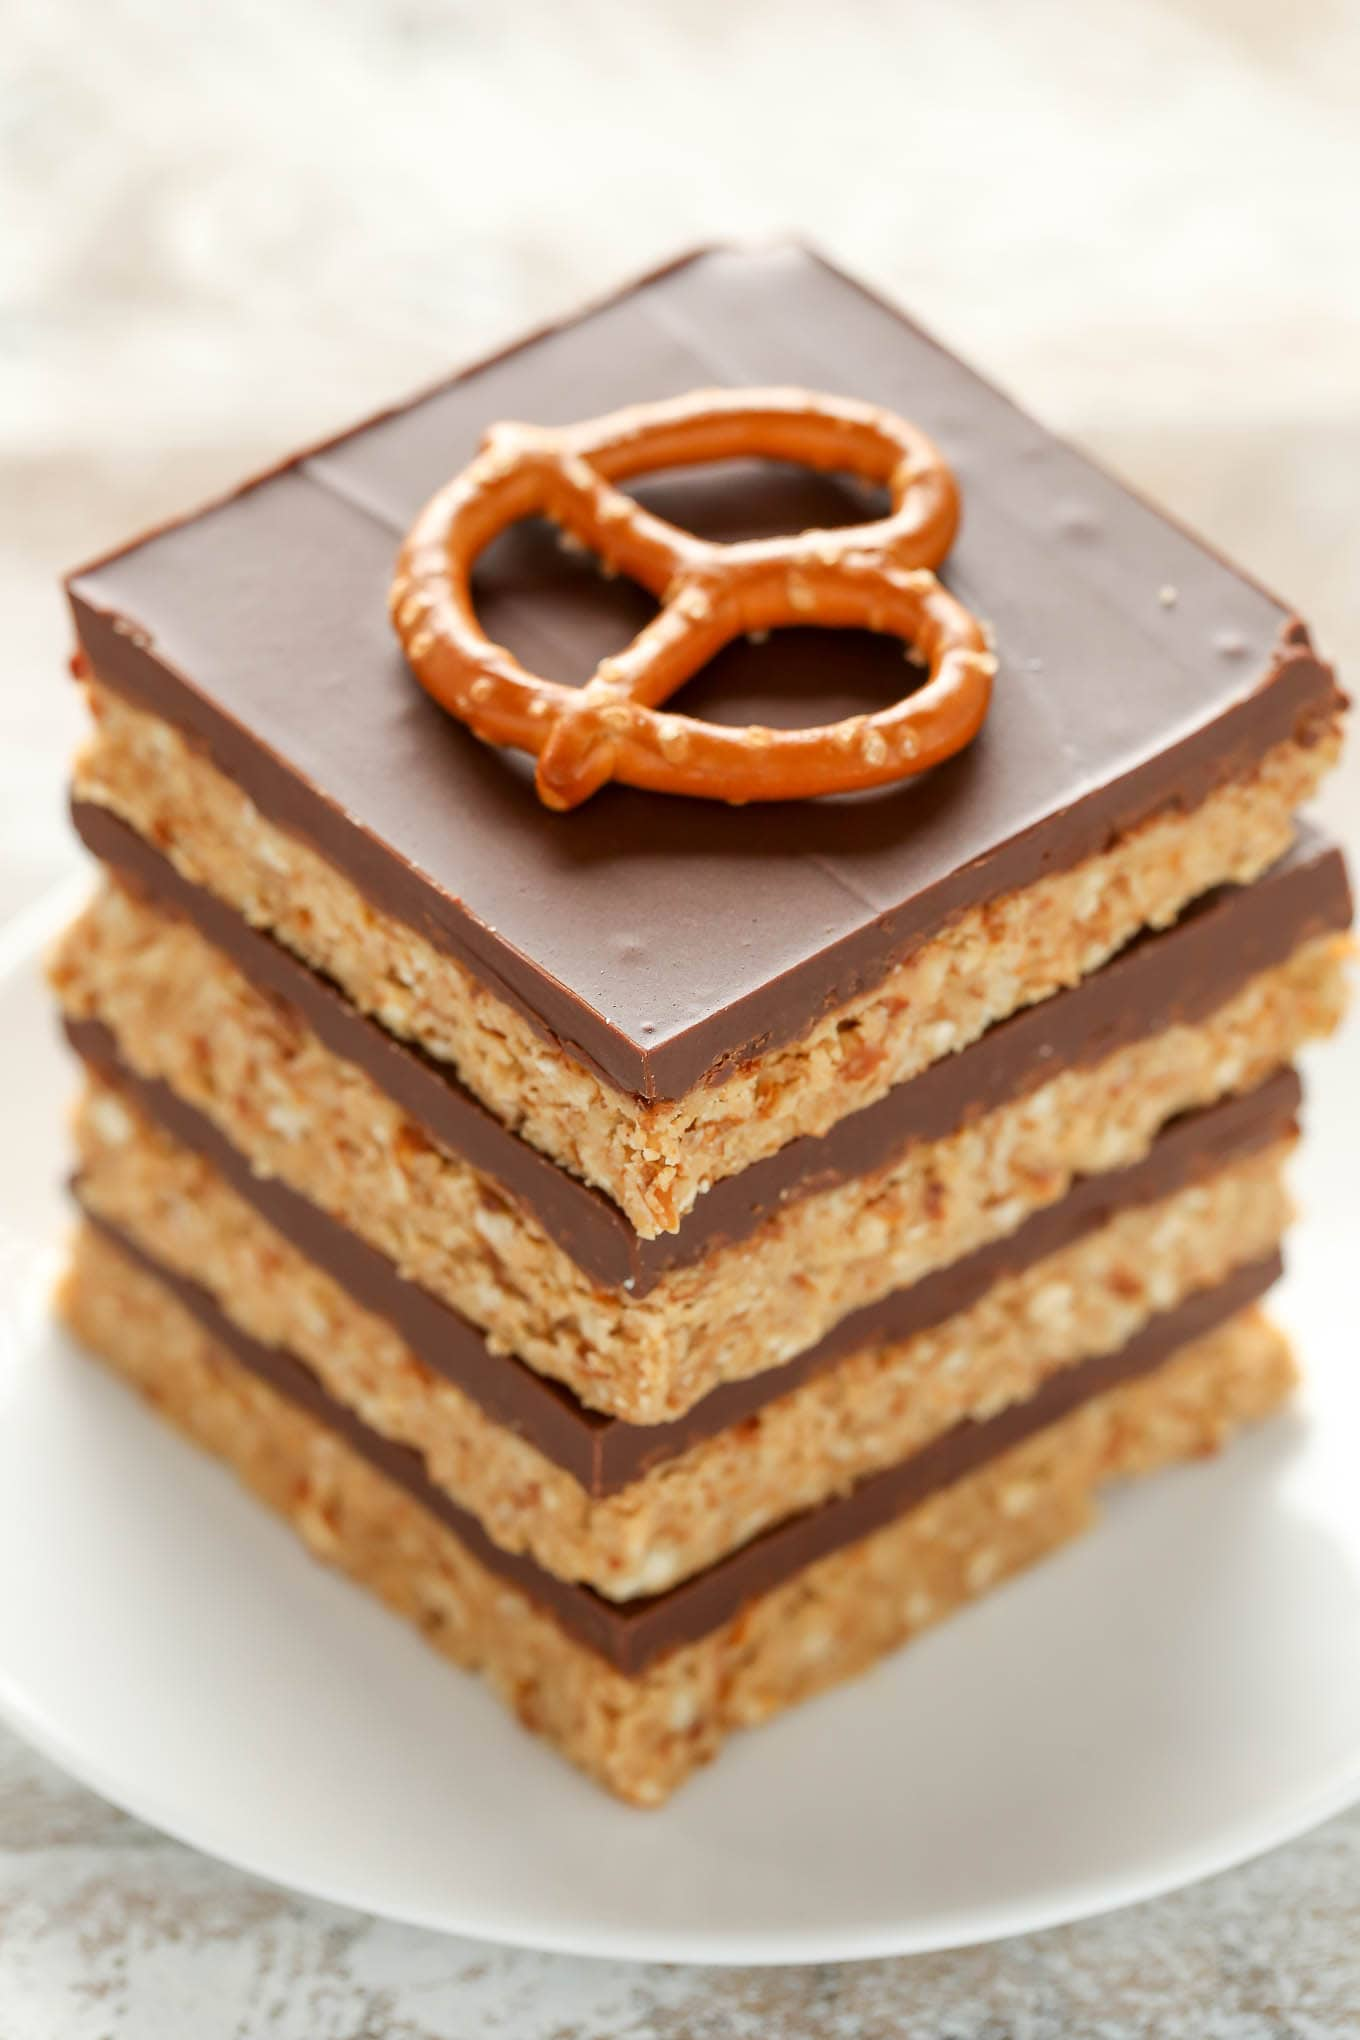 Trisha Yearwood Peanut Butter Cookie Bars : trisha, yearwood, peanut, butter, cookie, No-Bake, Peanut, Butter, Pretzel